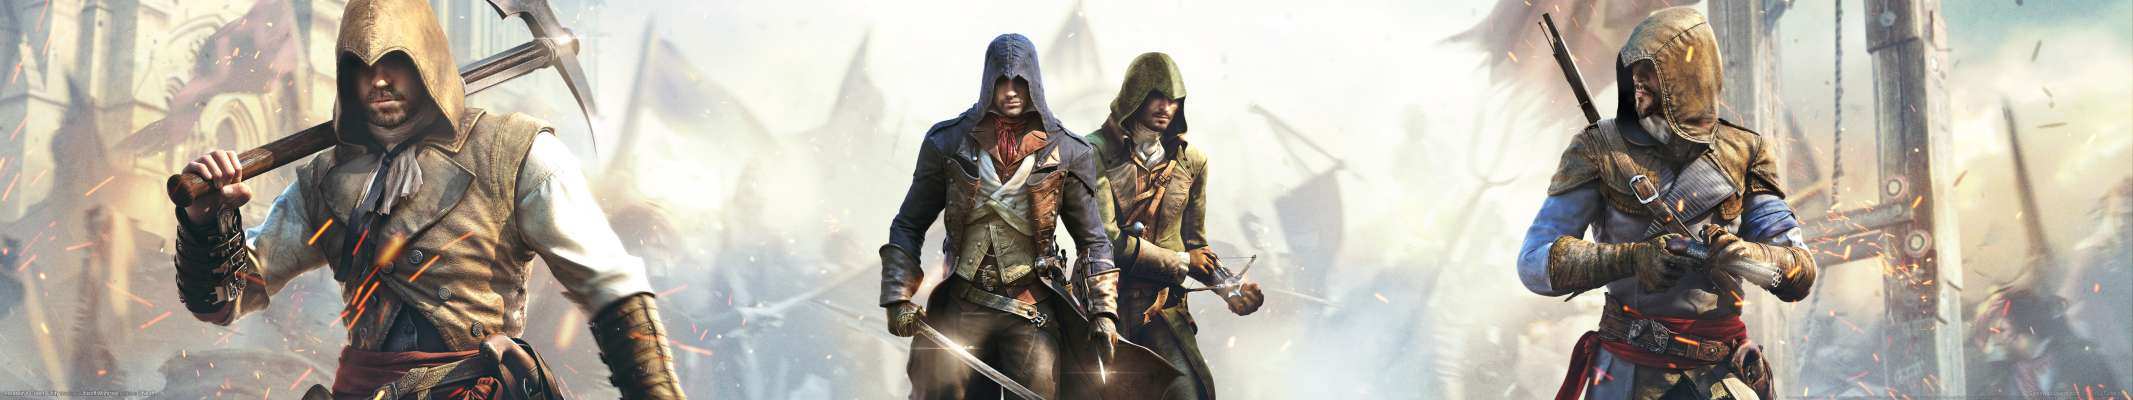 Assassin's Creed: Unity triple screen wallpaper or background